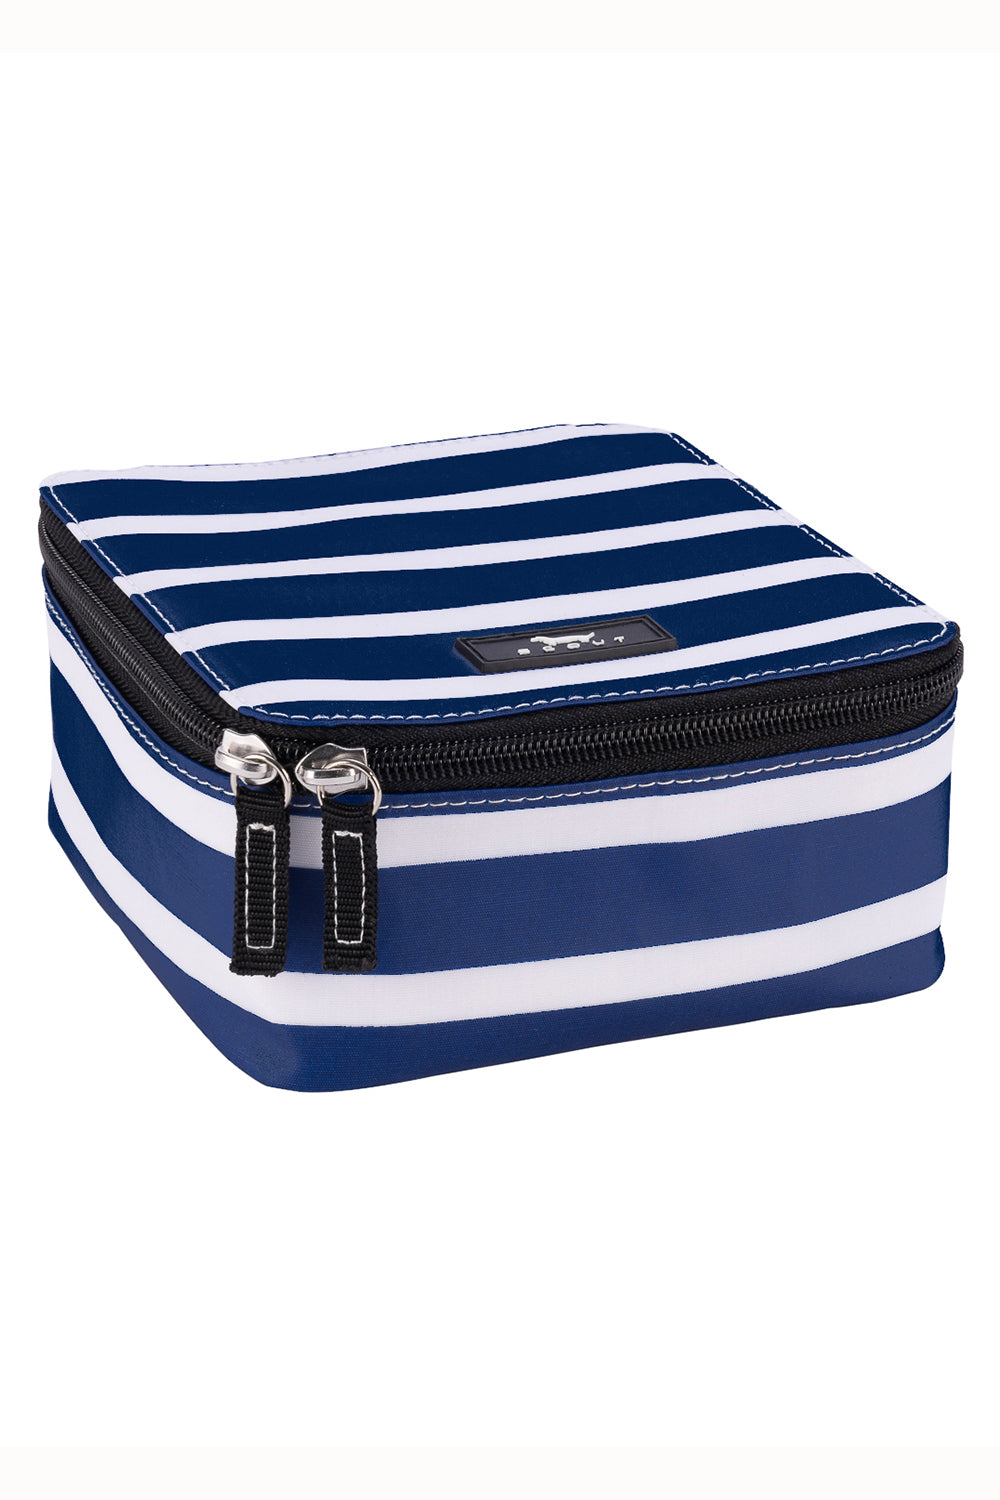 "Hidden Gem Travel Jewelry Case - ""Nantucket Navy"" SS20"